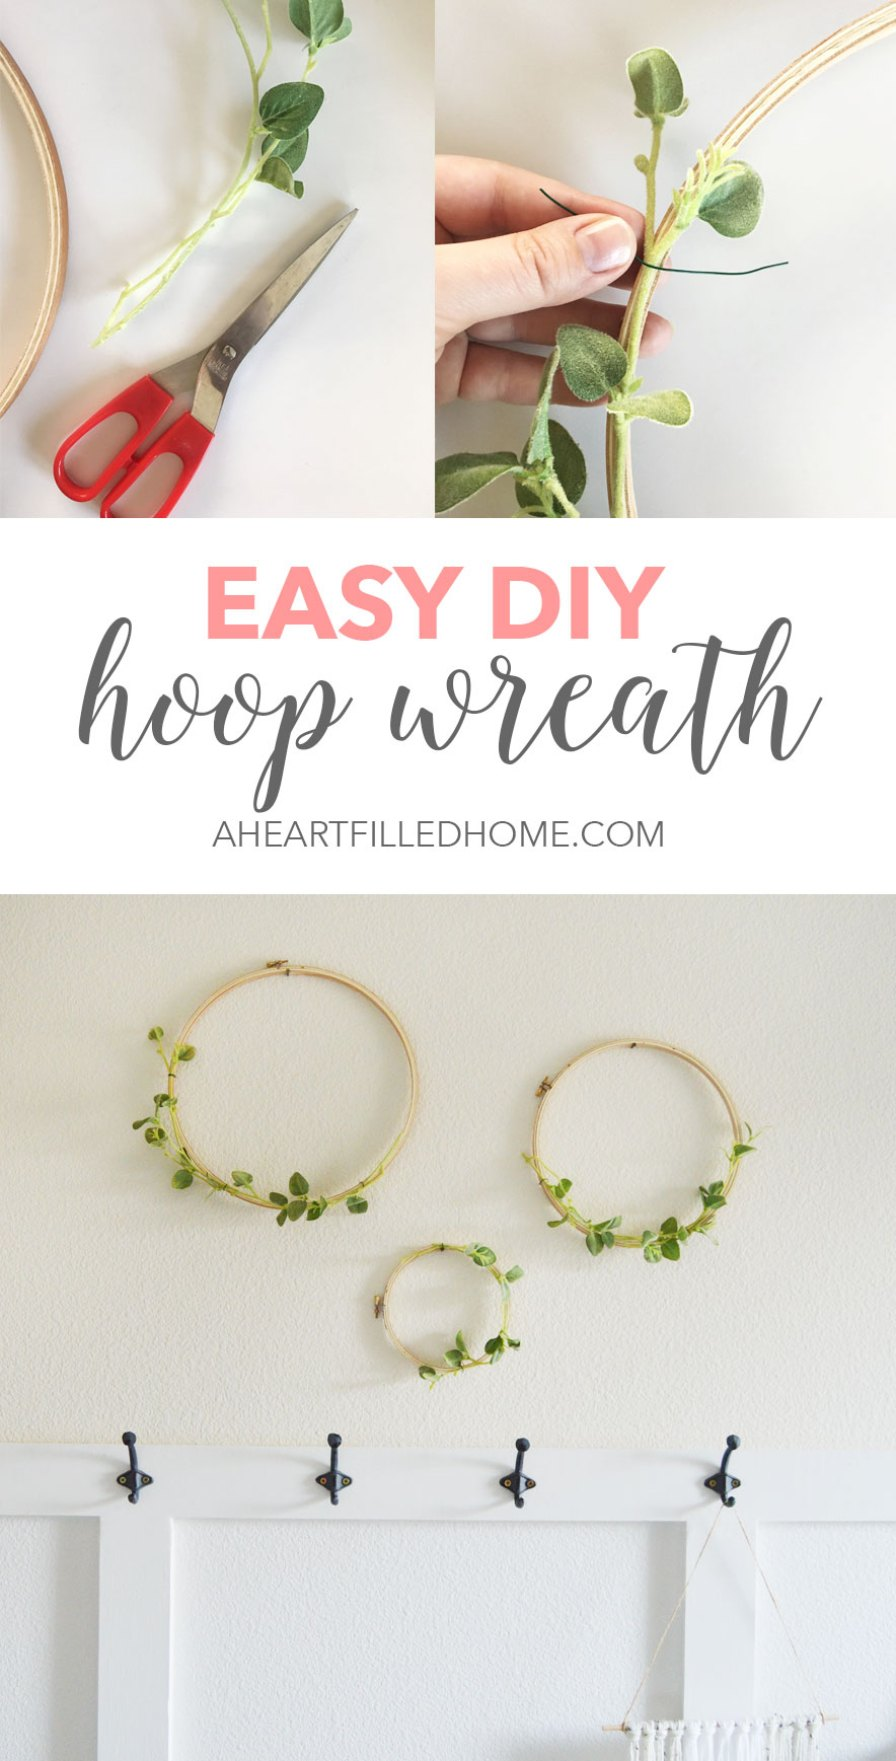 This DIY hoop wreath is so simple and easy to make! Find the tutorial at aheartfilledhome.com